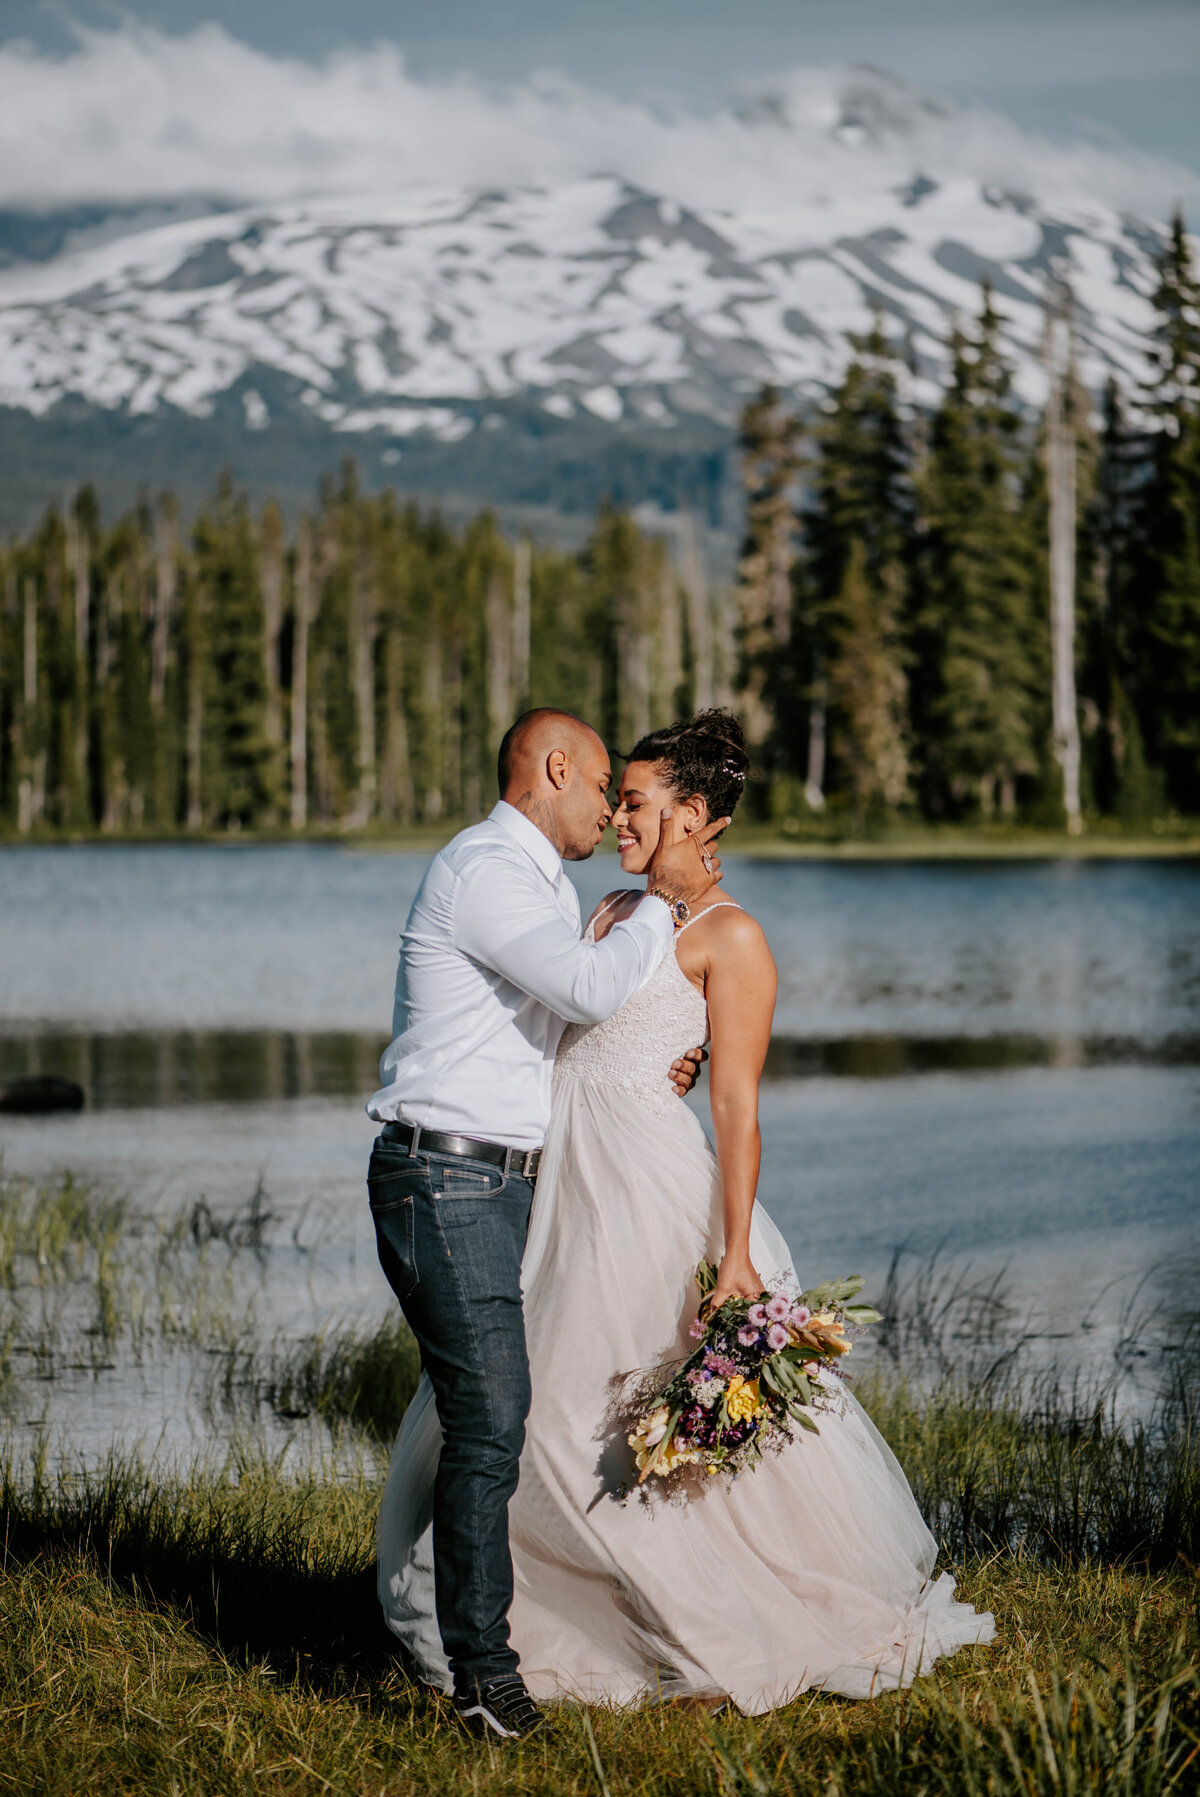 sisters-bend-oregon-summer-wedding-elopement-photographer-dress-scenic-byway-wedding-deewright-observatory-5533